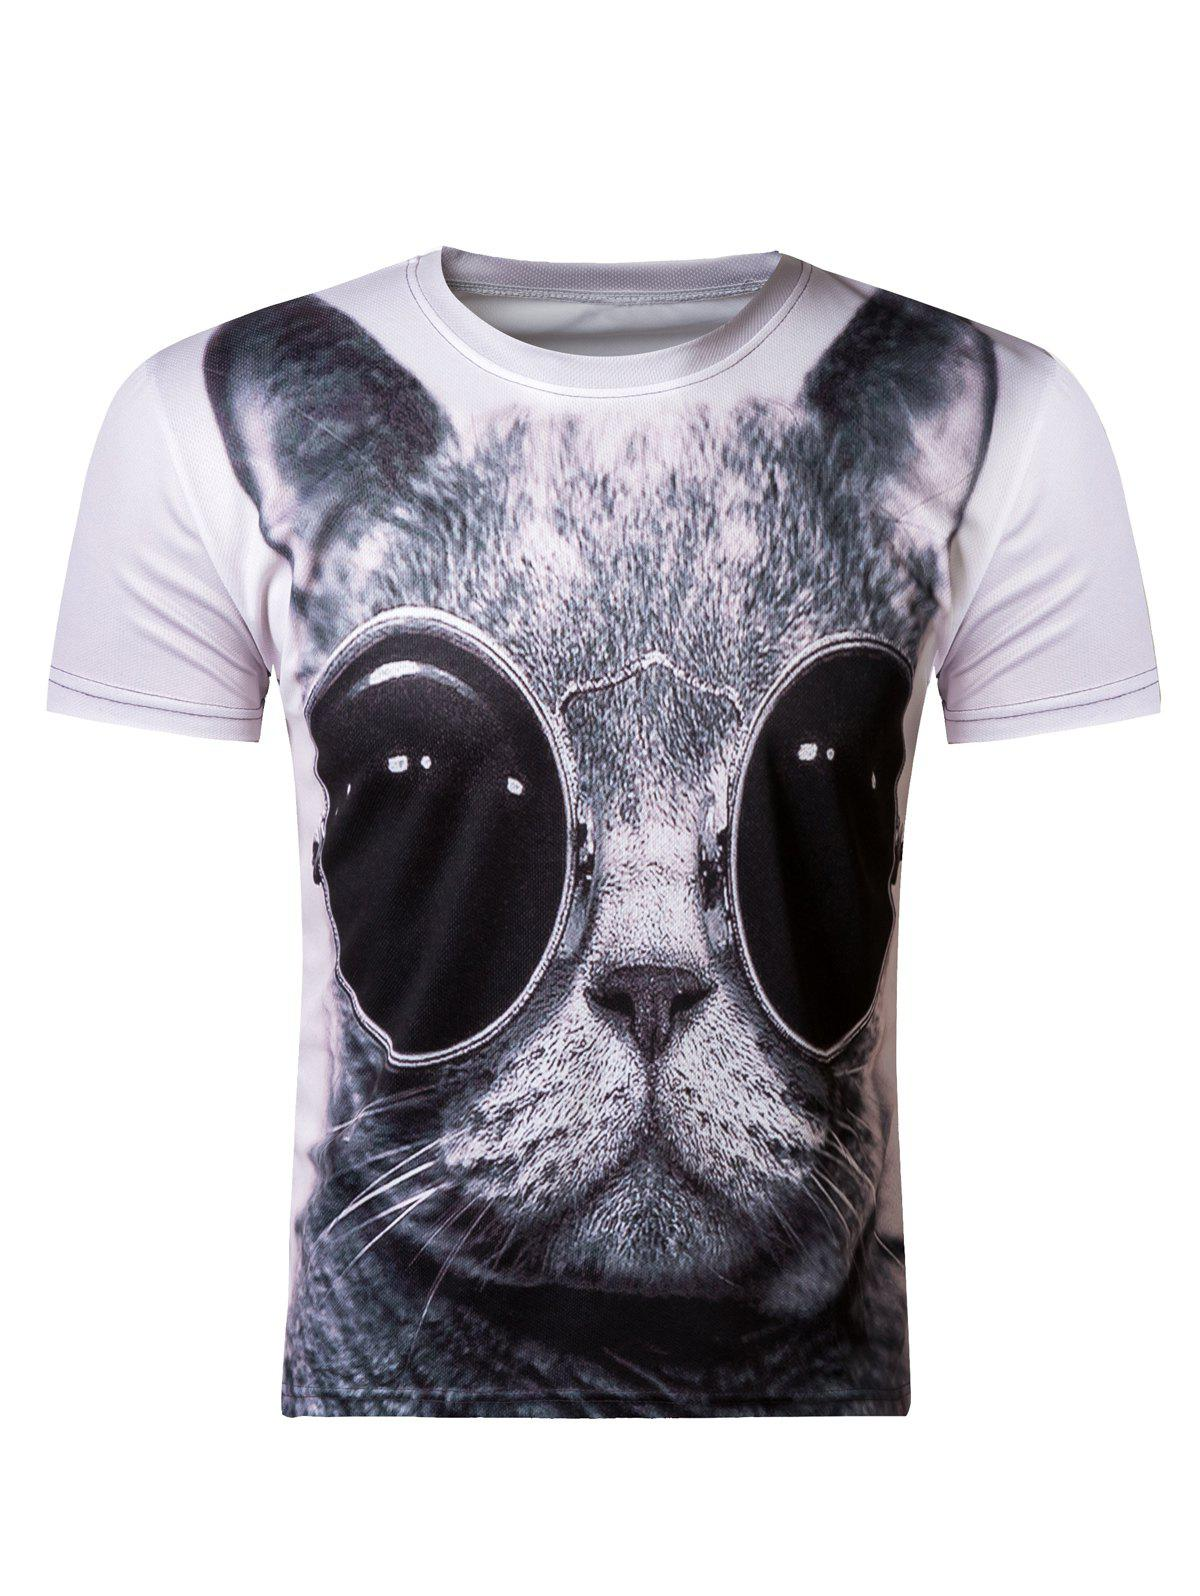 3D Round Neck Cute Kitten Wearing Glasses Print Short Sleeve T-Shirt For Men - COLORMIX 2XL